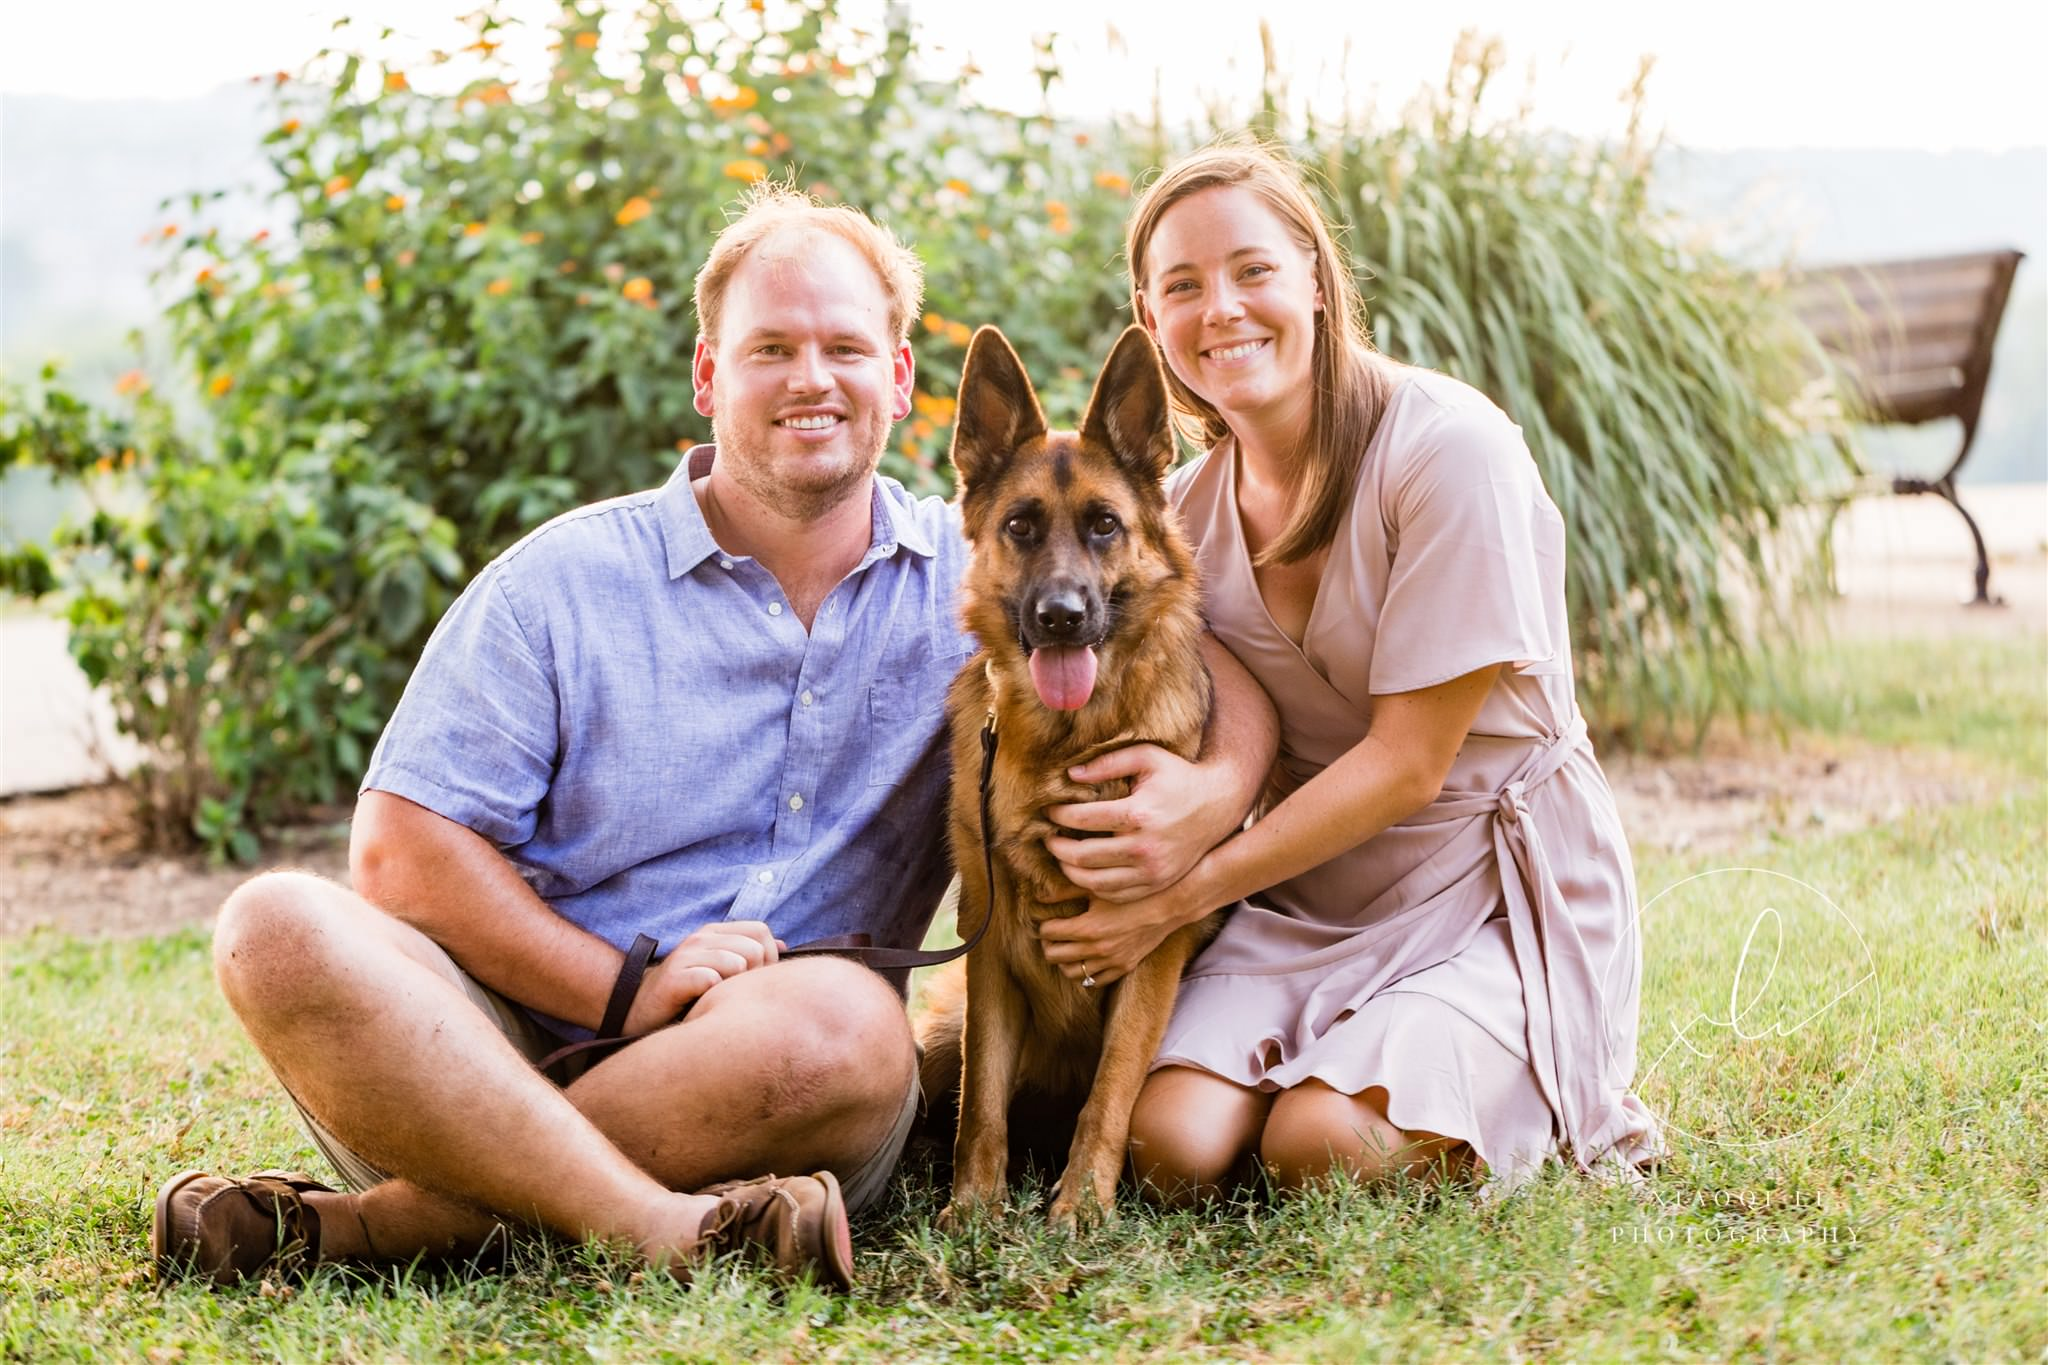 newly engaged couple sitting on ground with dog Stella during session